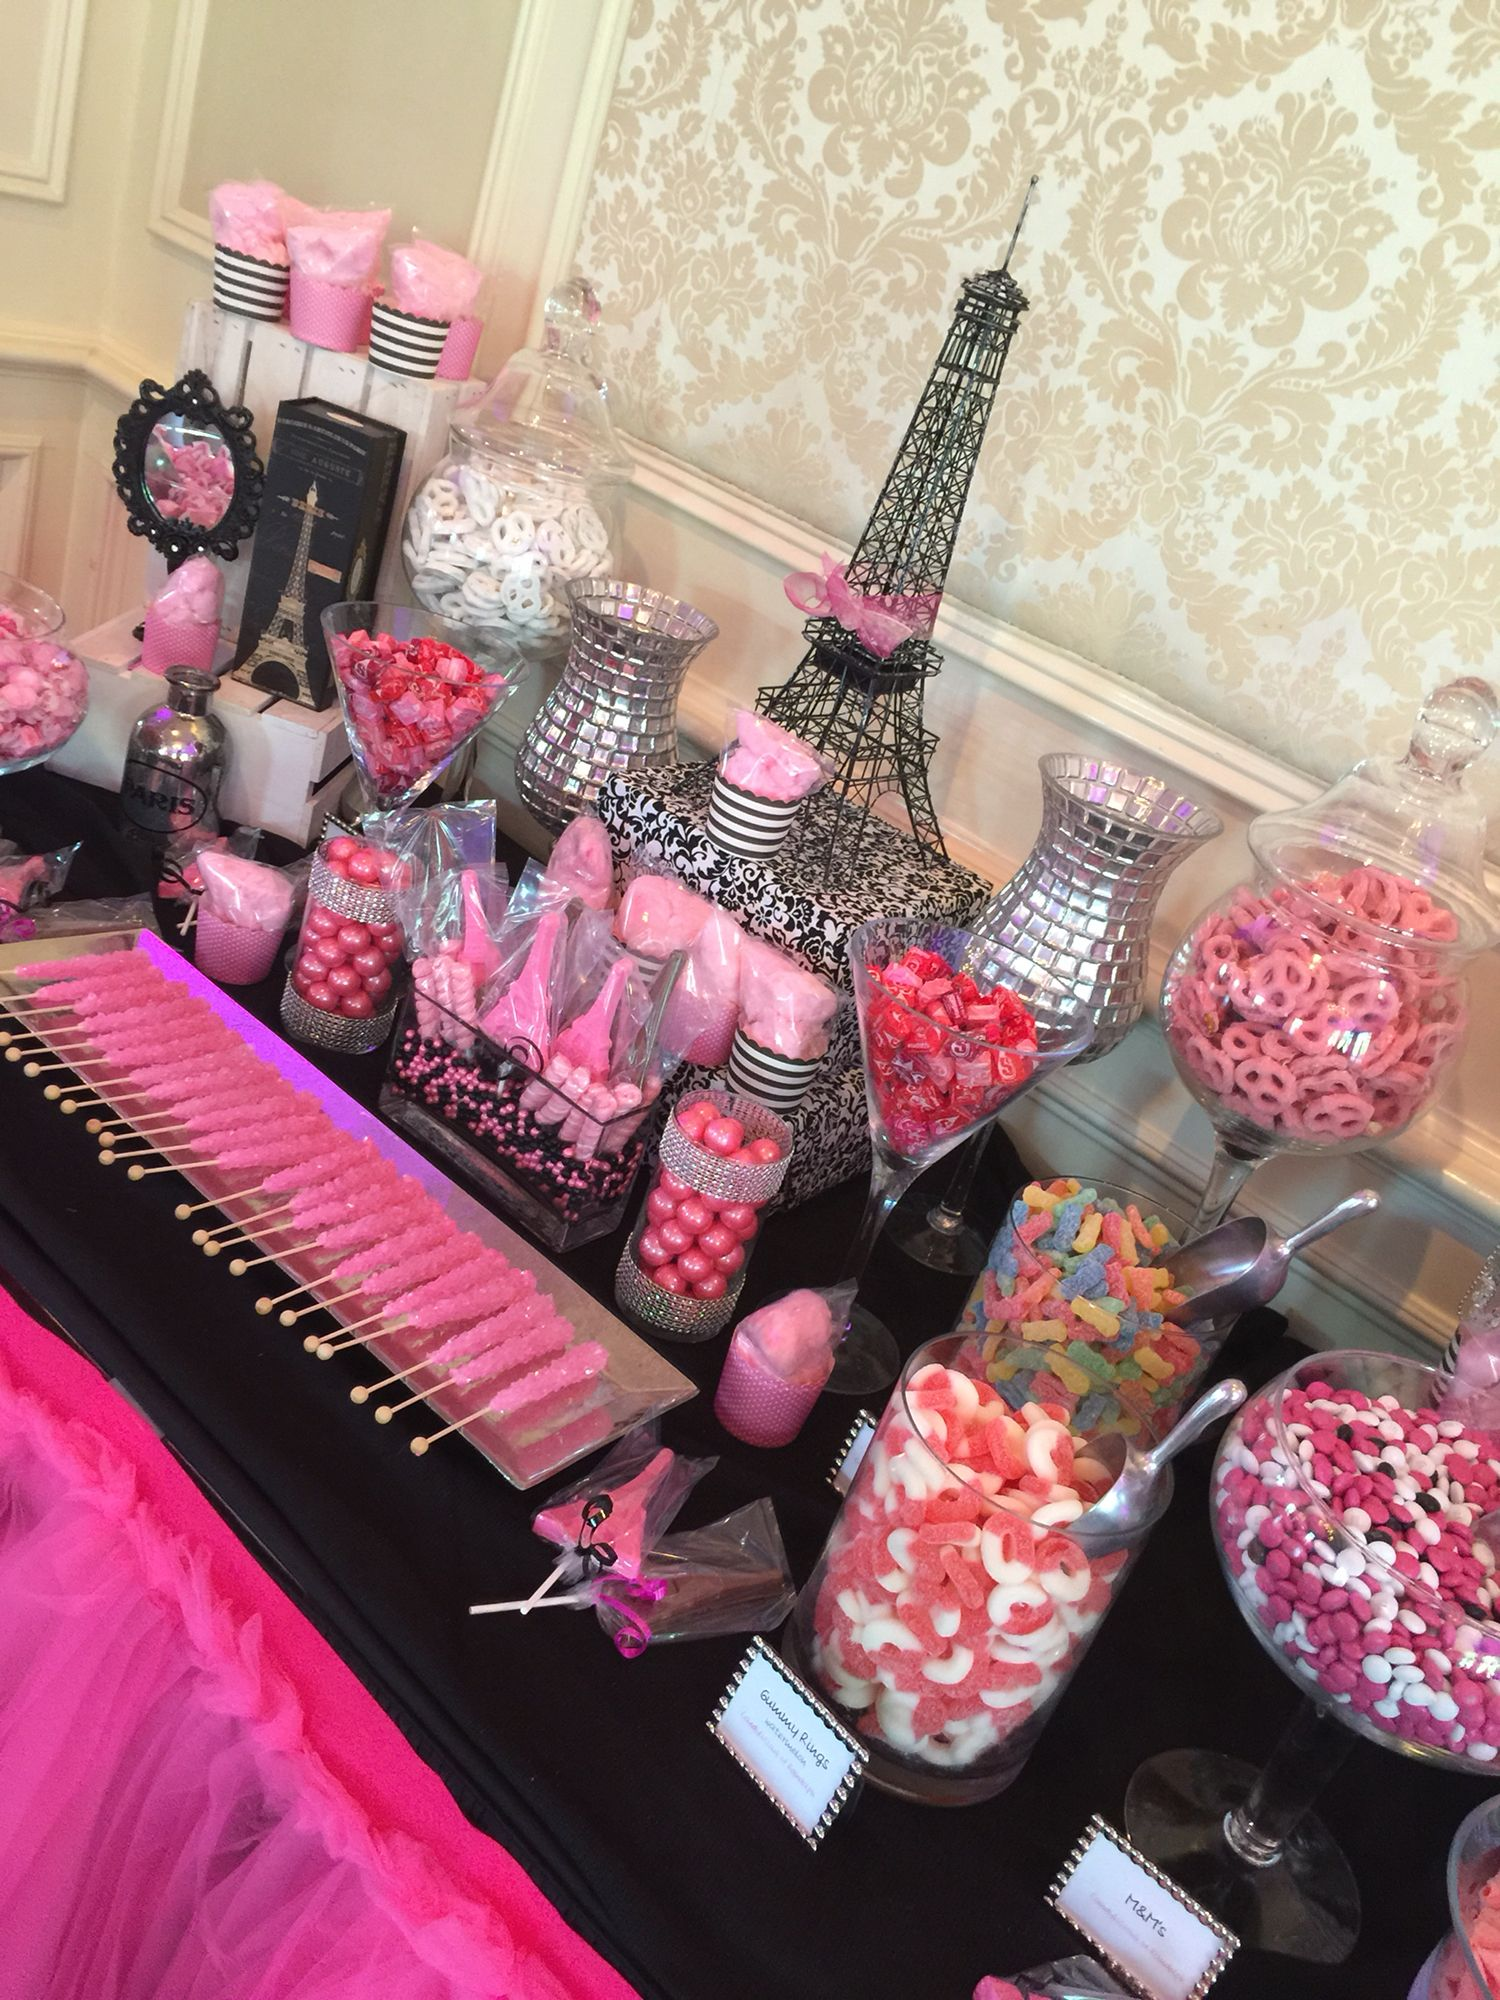 Paris themed birthday party ideas - Paris Themed Candy Table We Made For A Sweet 16 At Meadow Wood Manor In Randolph Nj M S